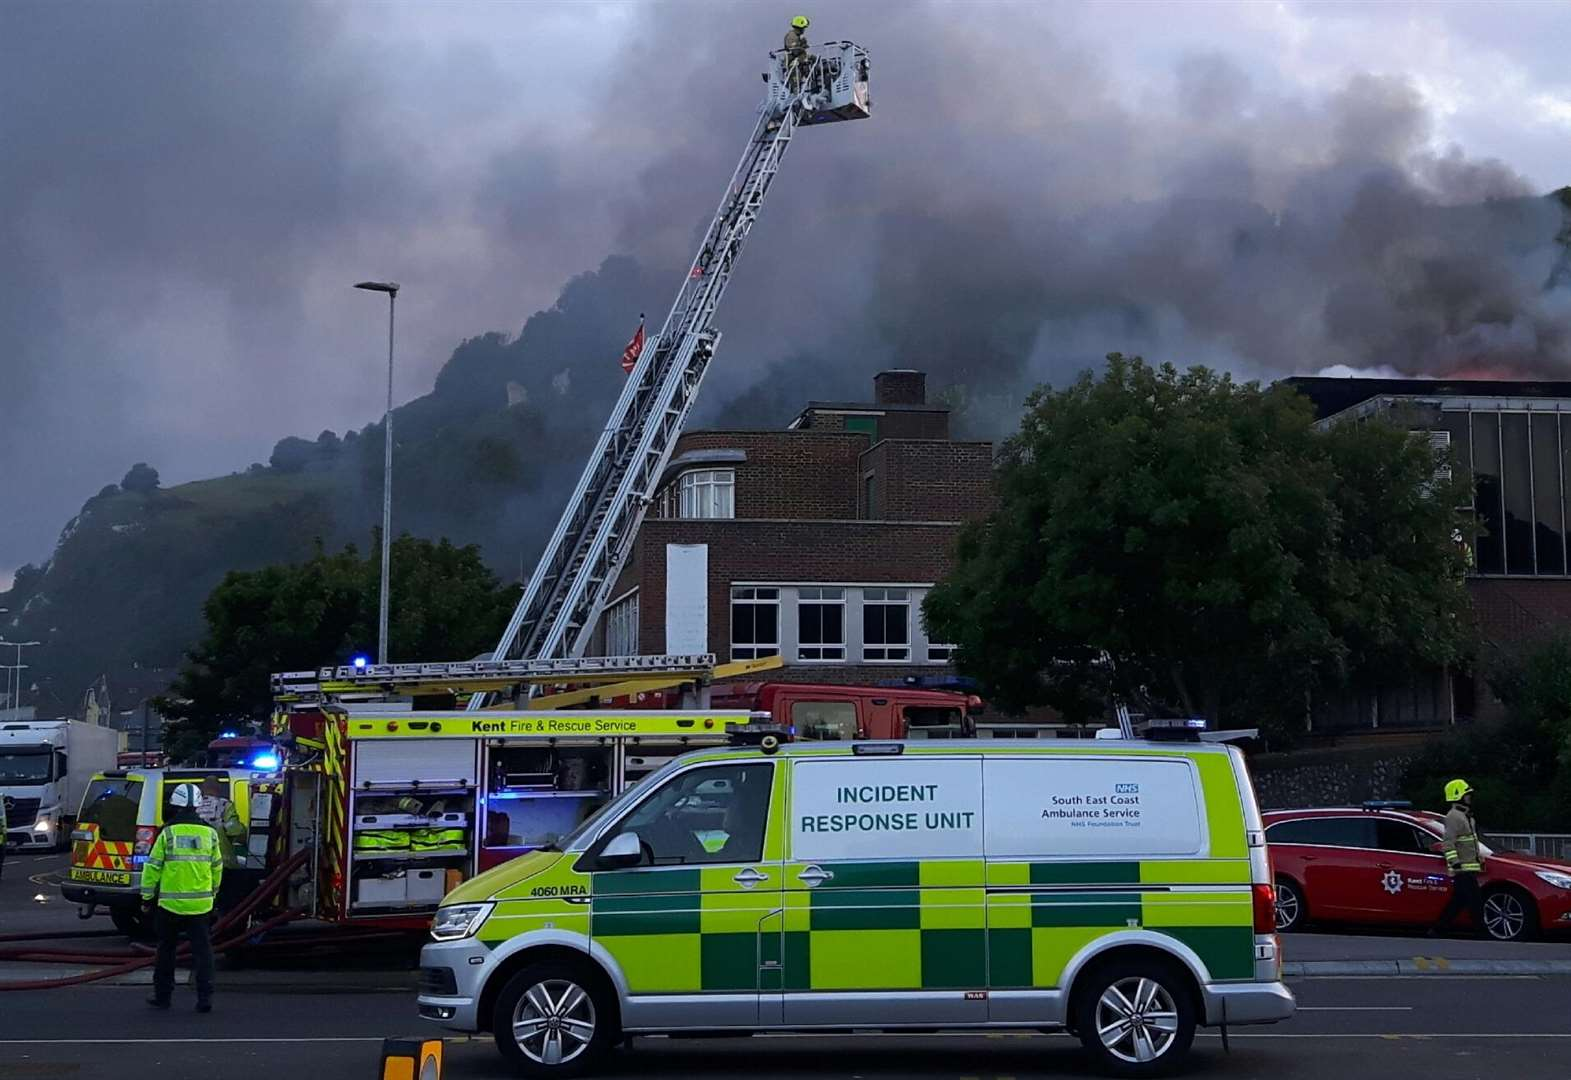 Fires could have been arson attacks